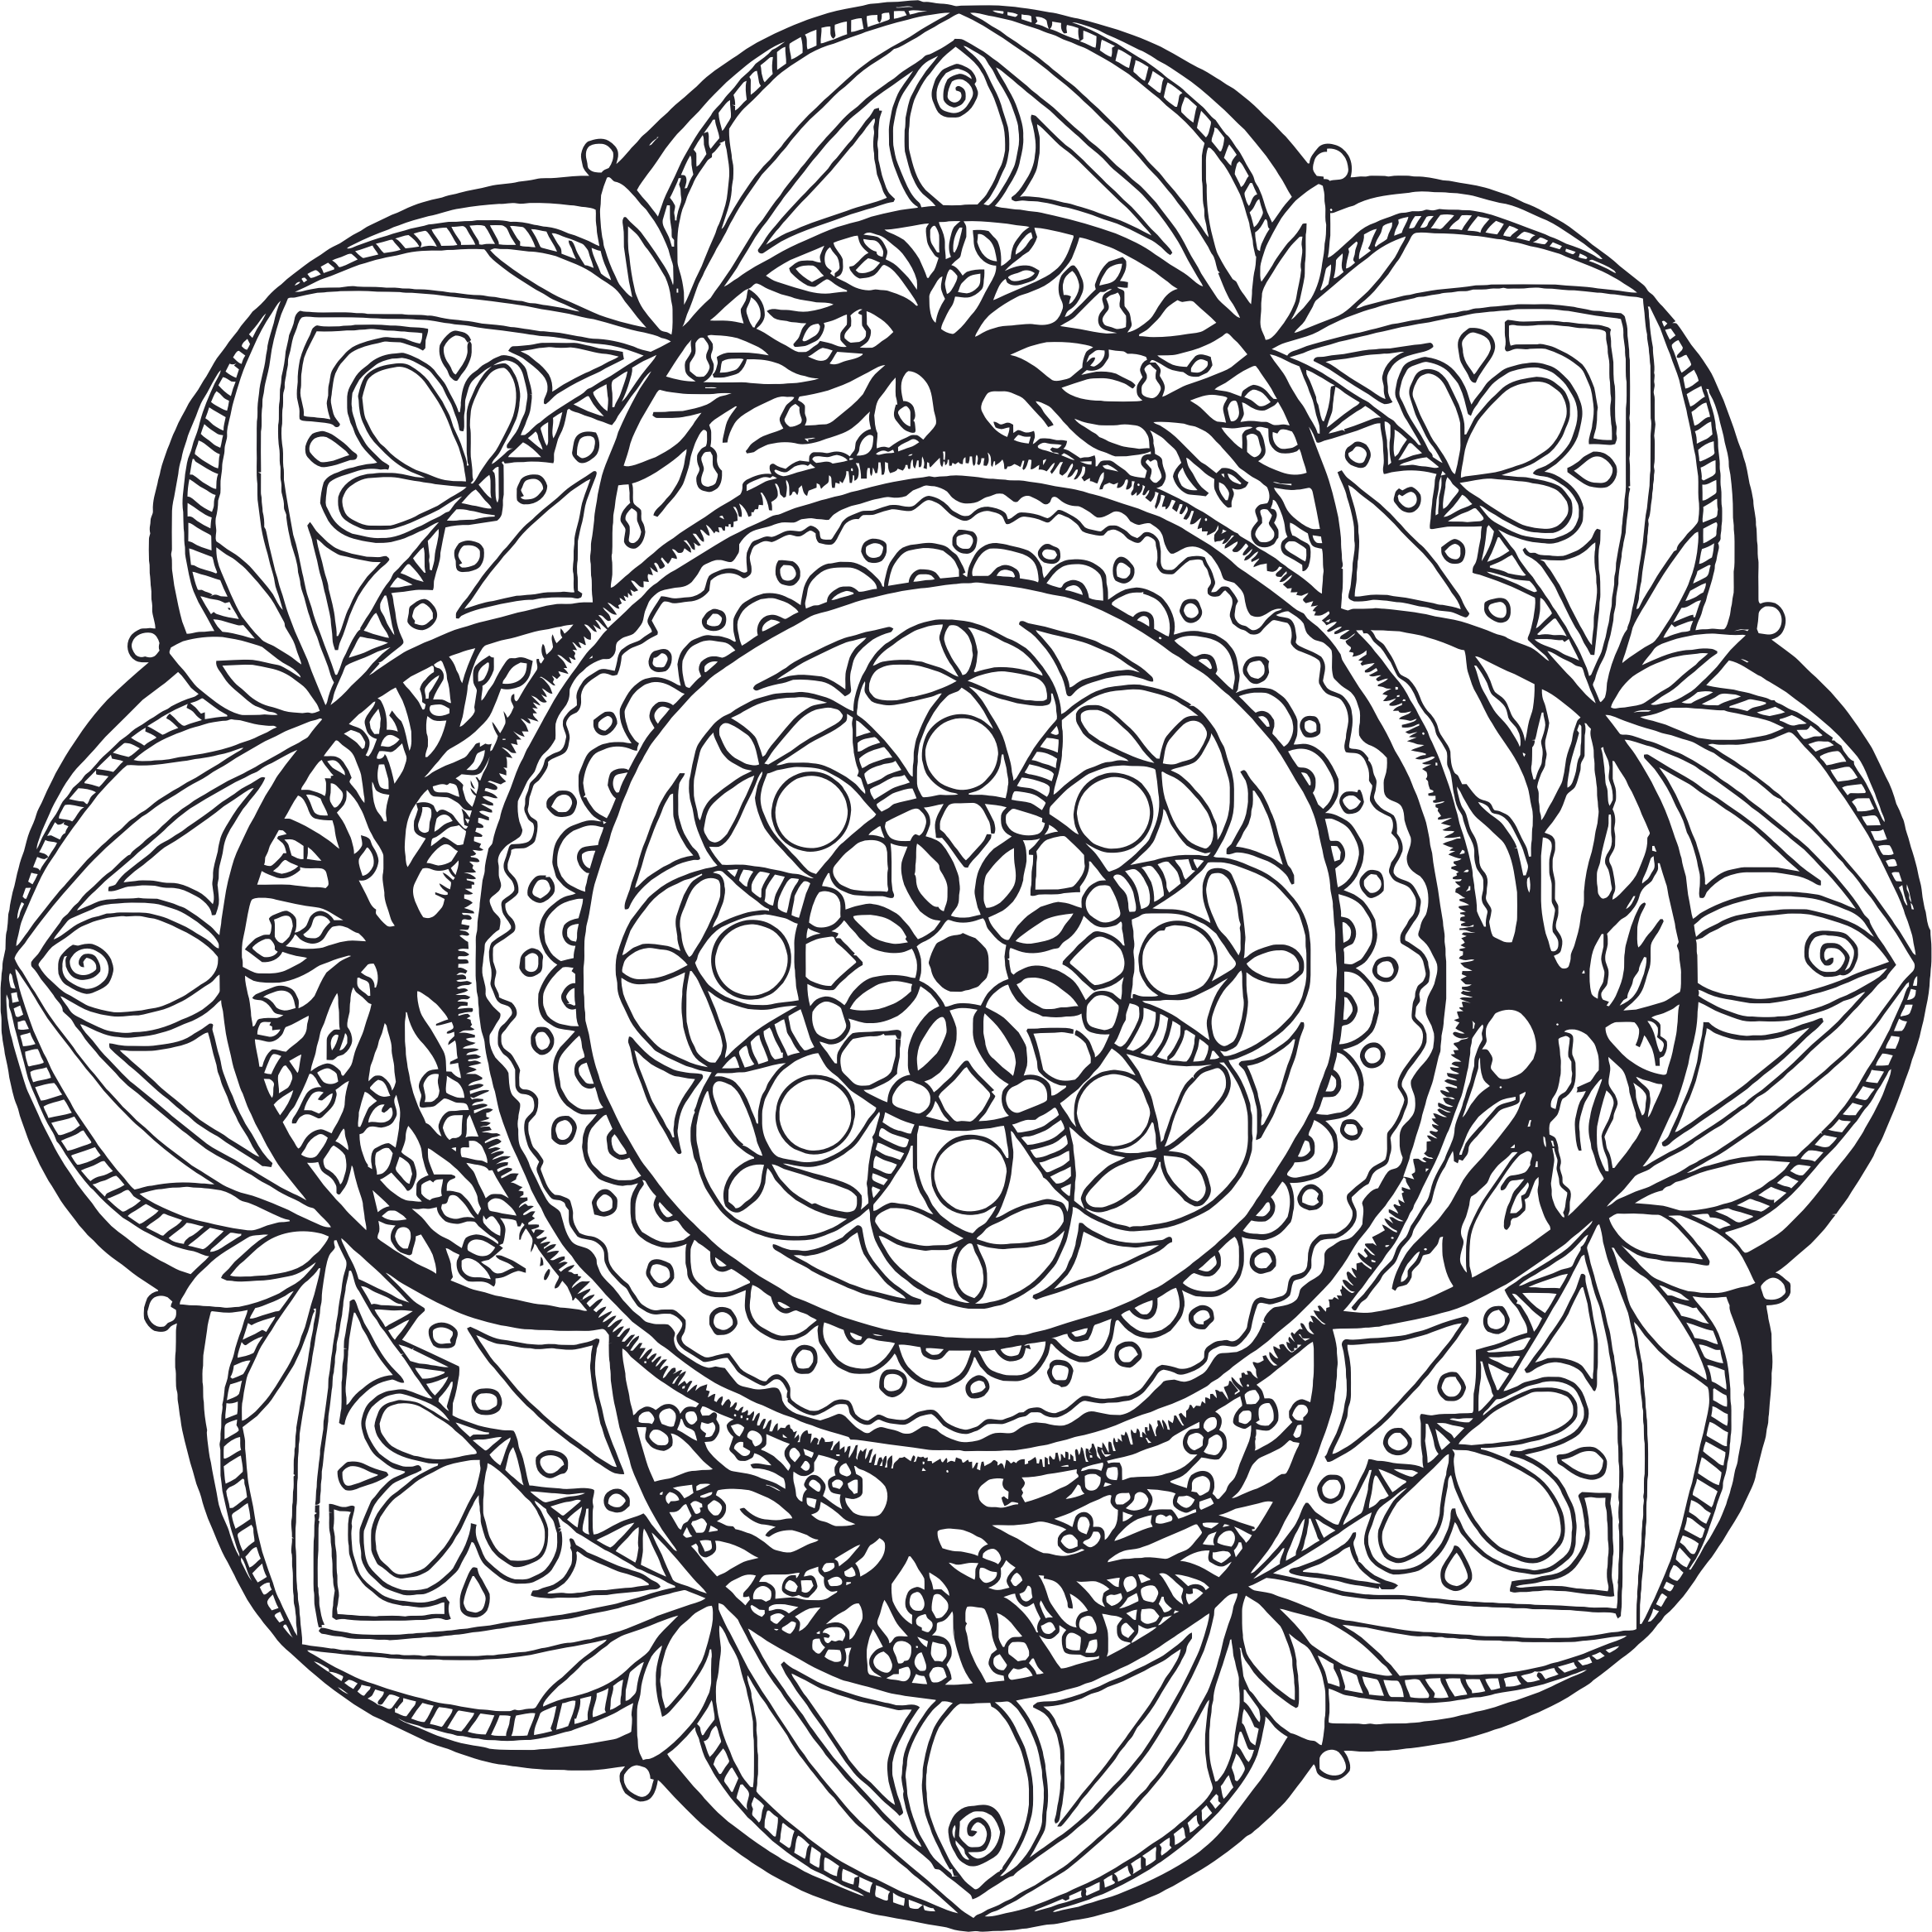 Hand Drawn Mandala No Fills by GDJ